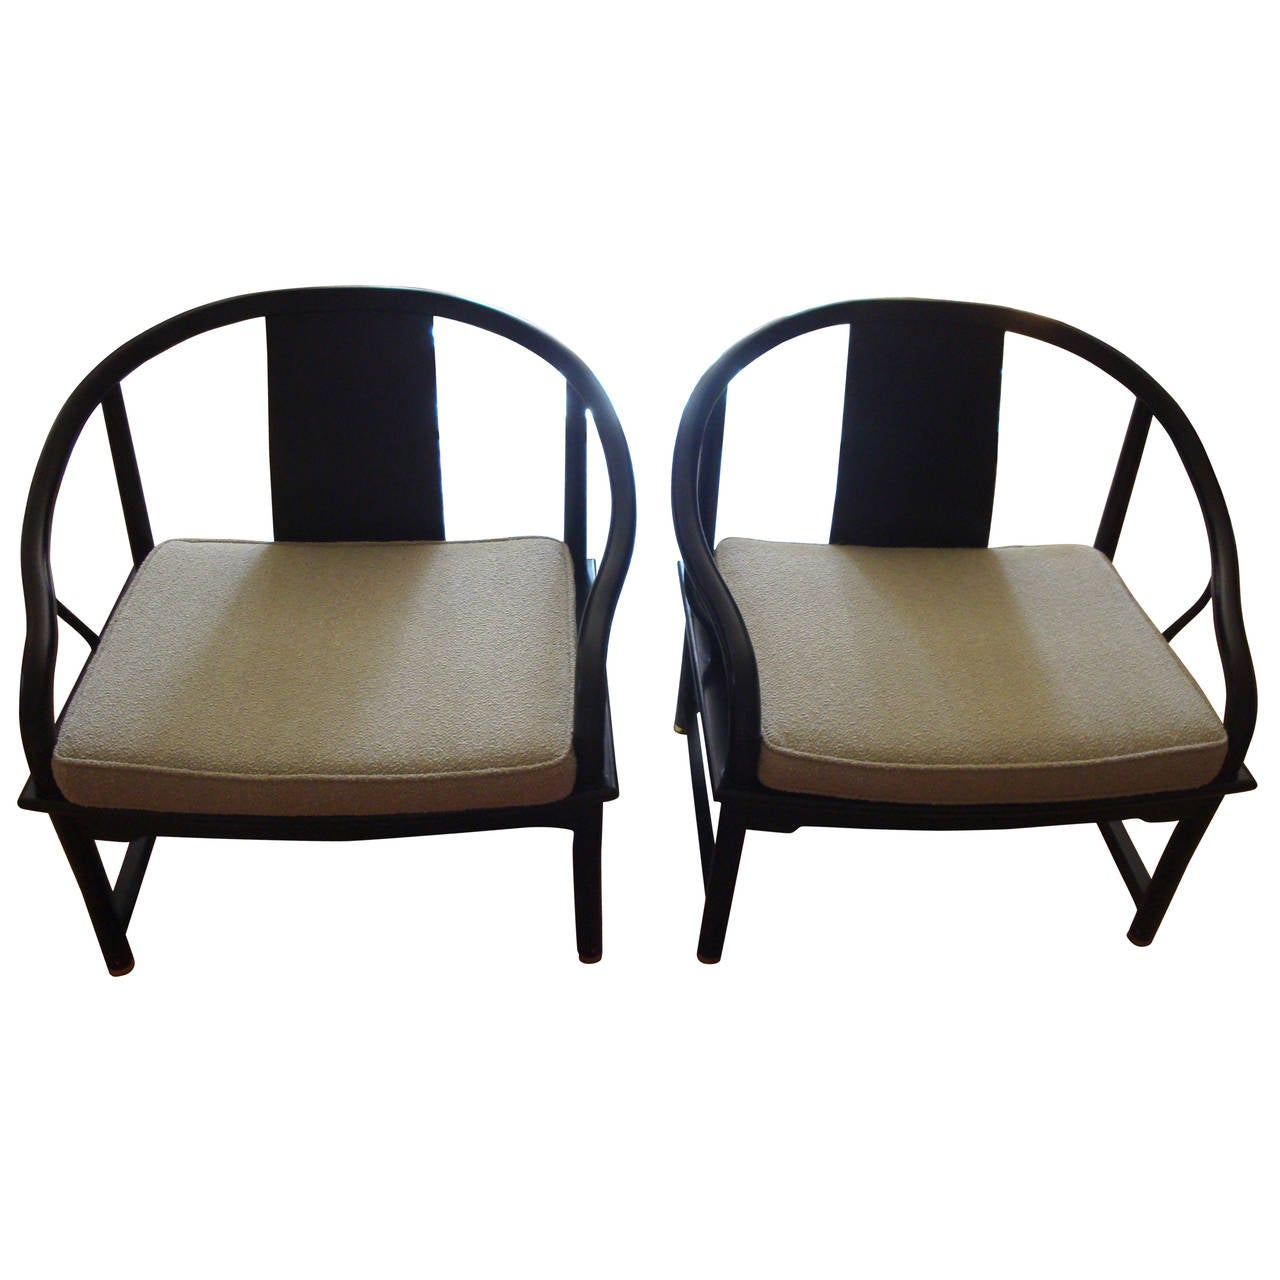 Midcentury Chairs Mid Century Modern Baker Asian Style Caned Chairs At 1stdibs